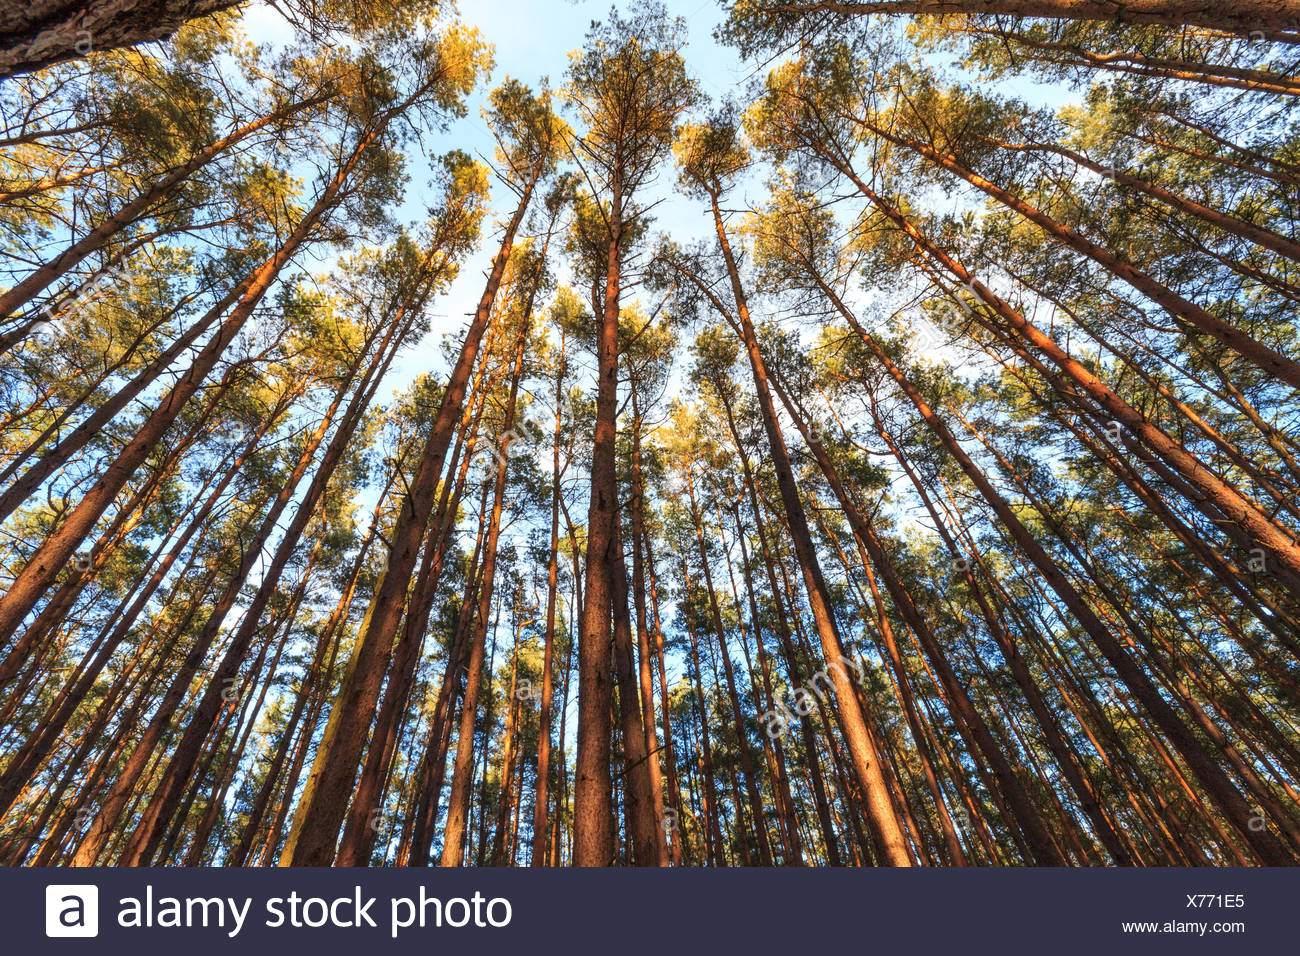 trees / treetops inside forest - Stock Image